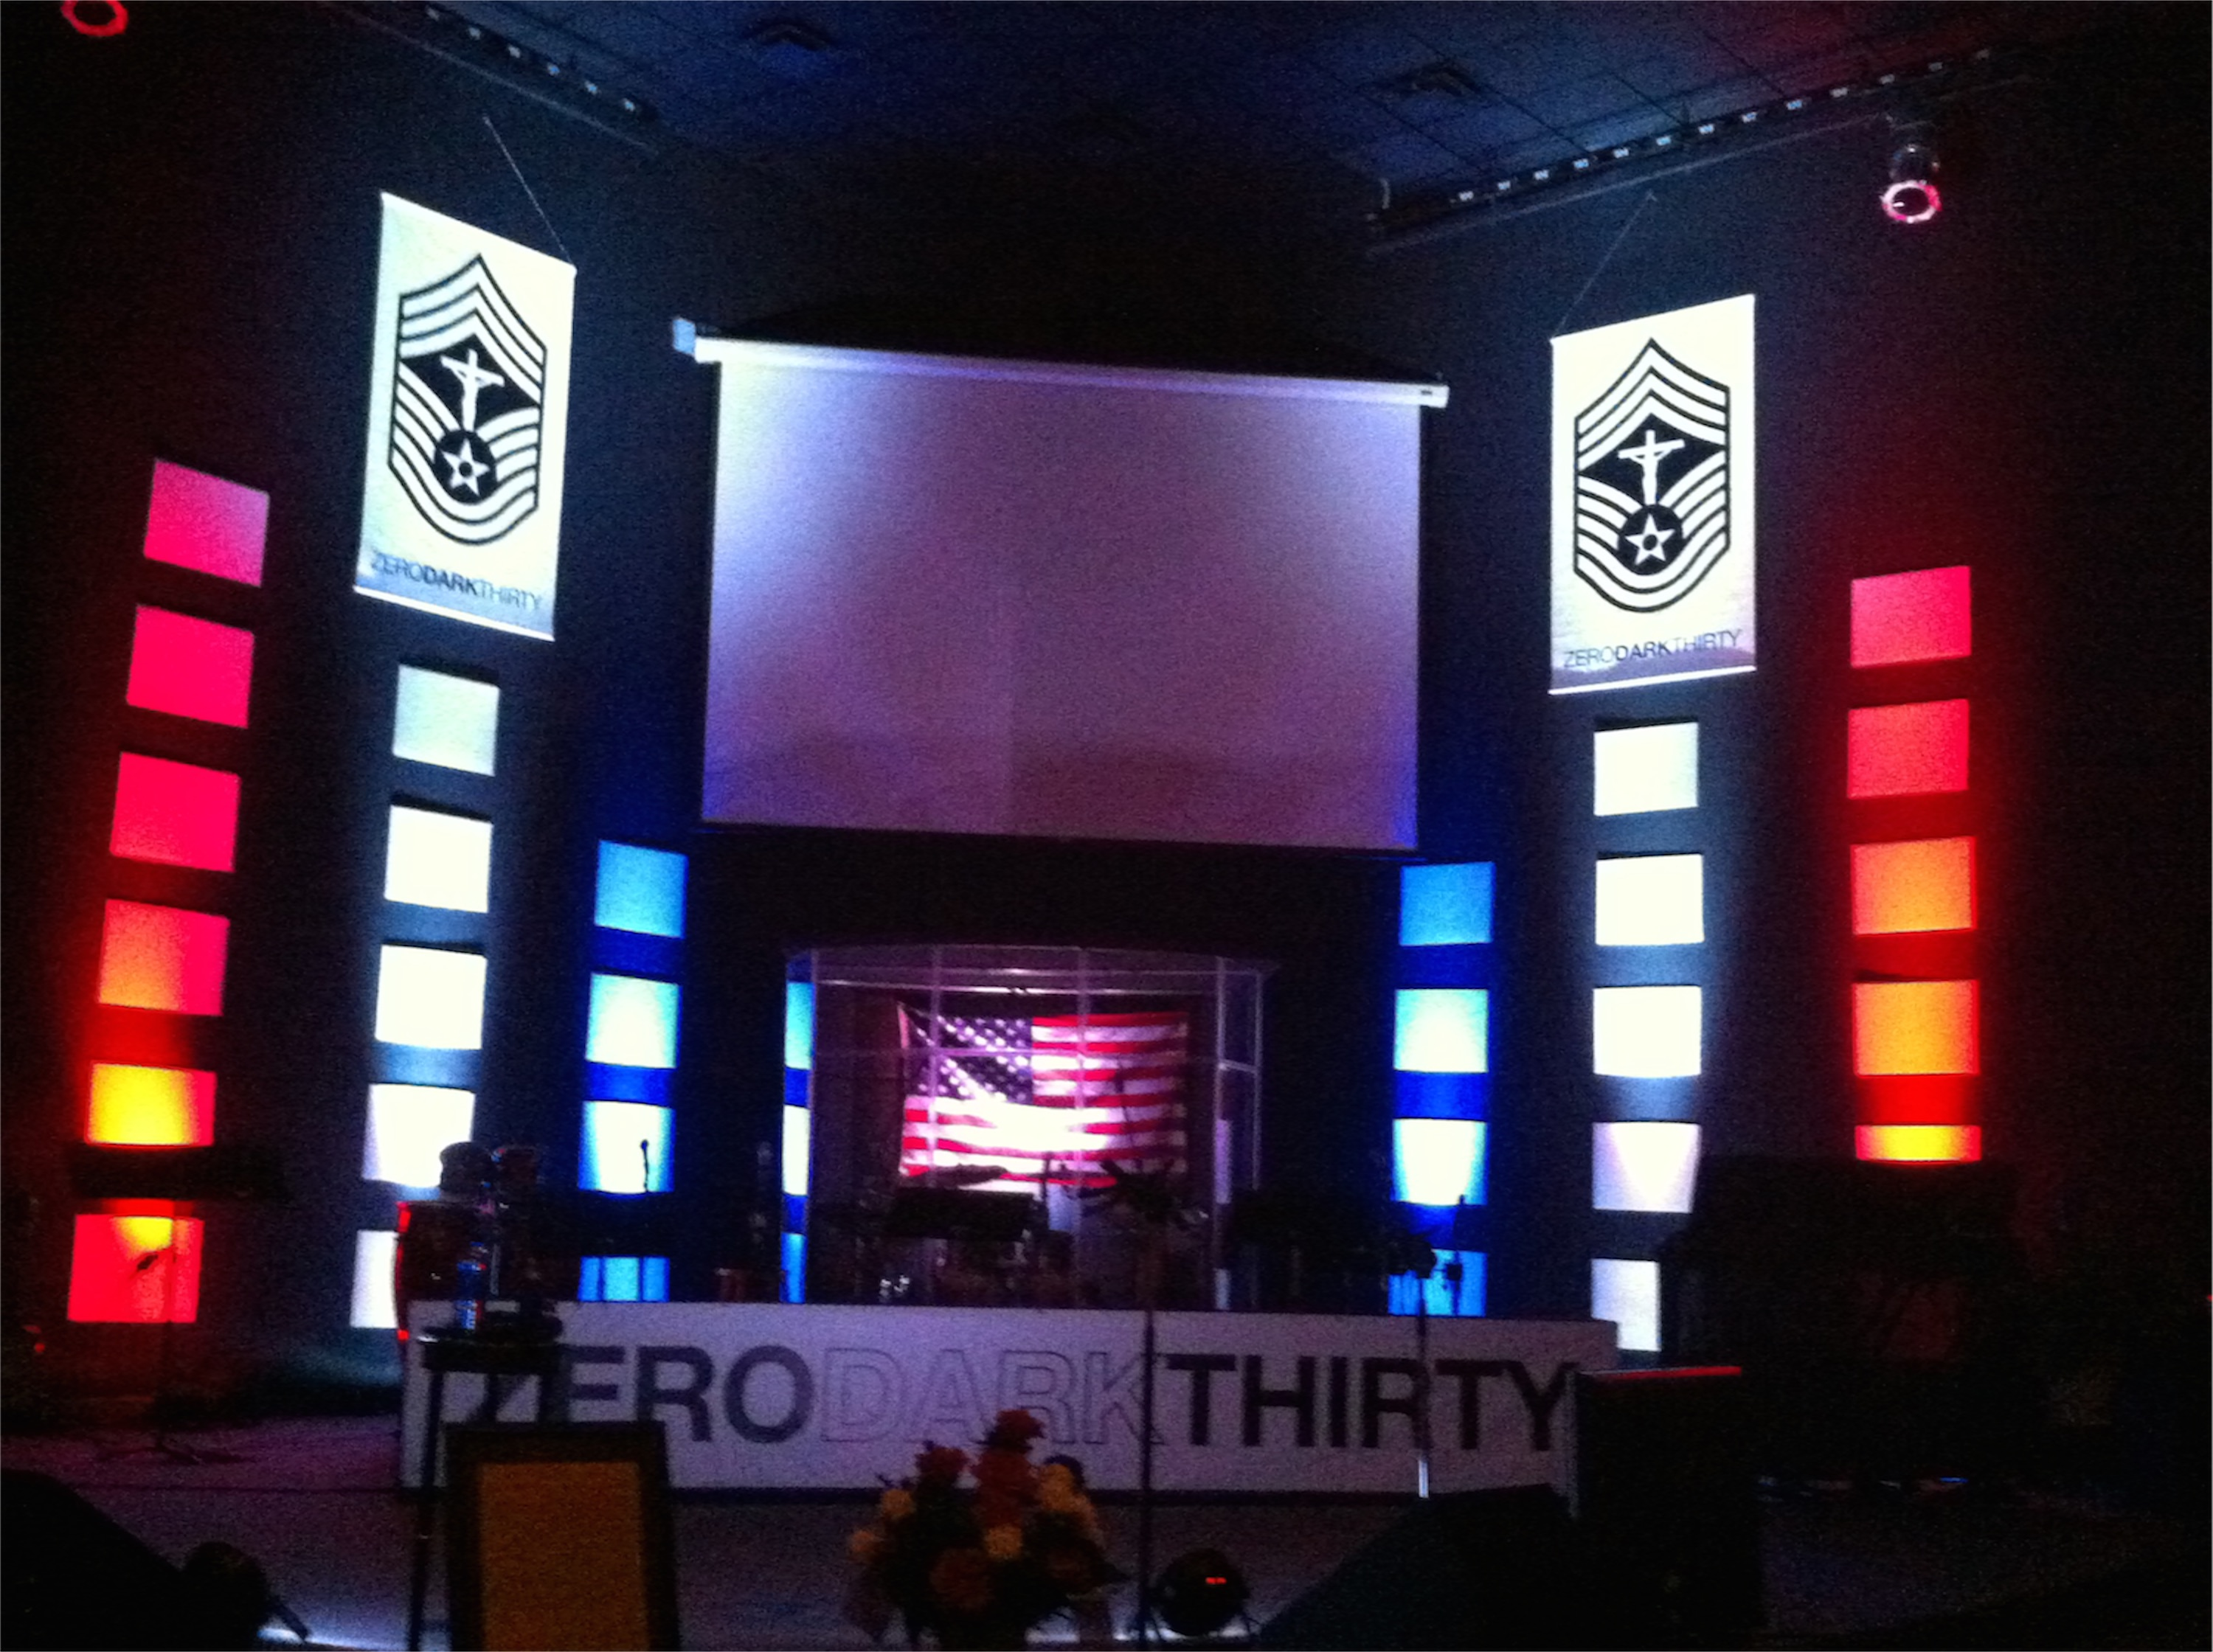 zero dark thirty church stage design ideas